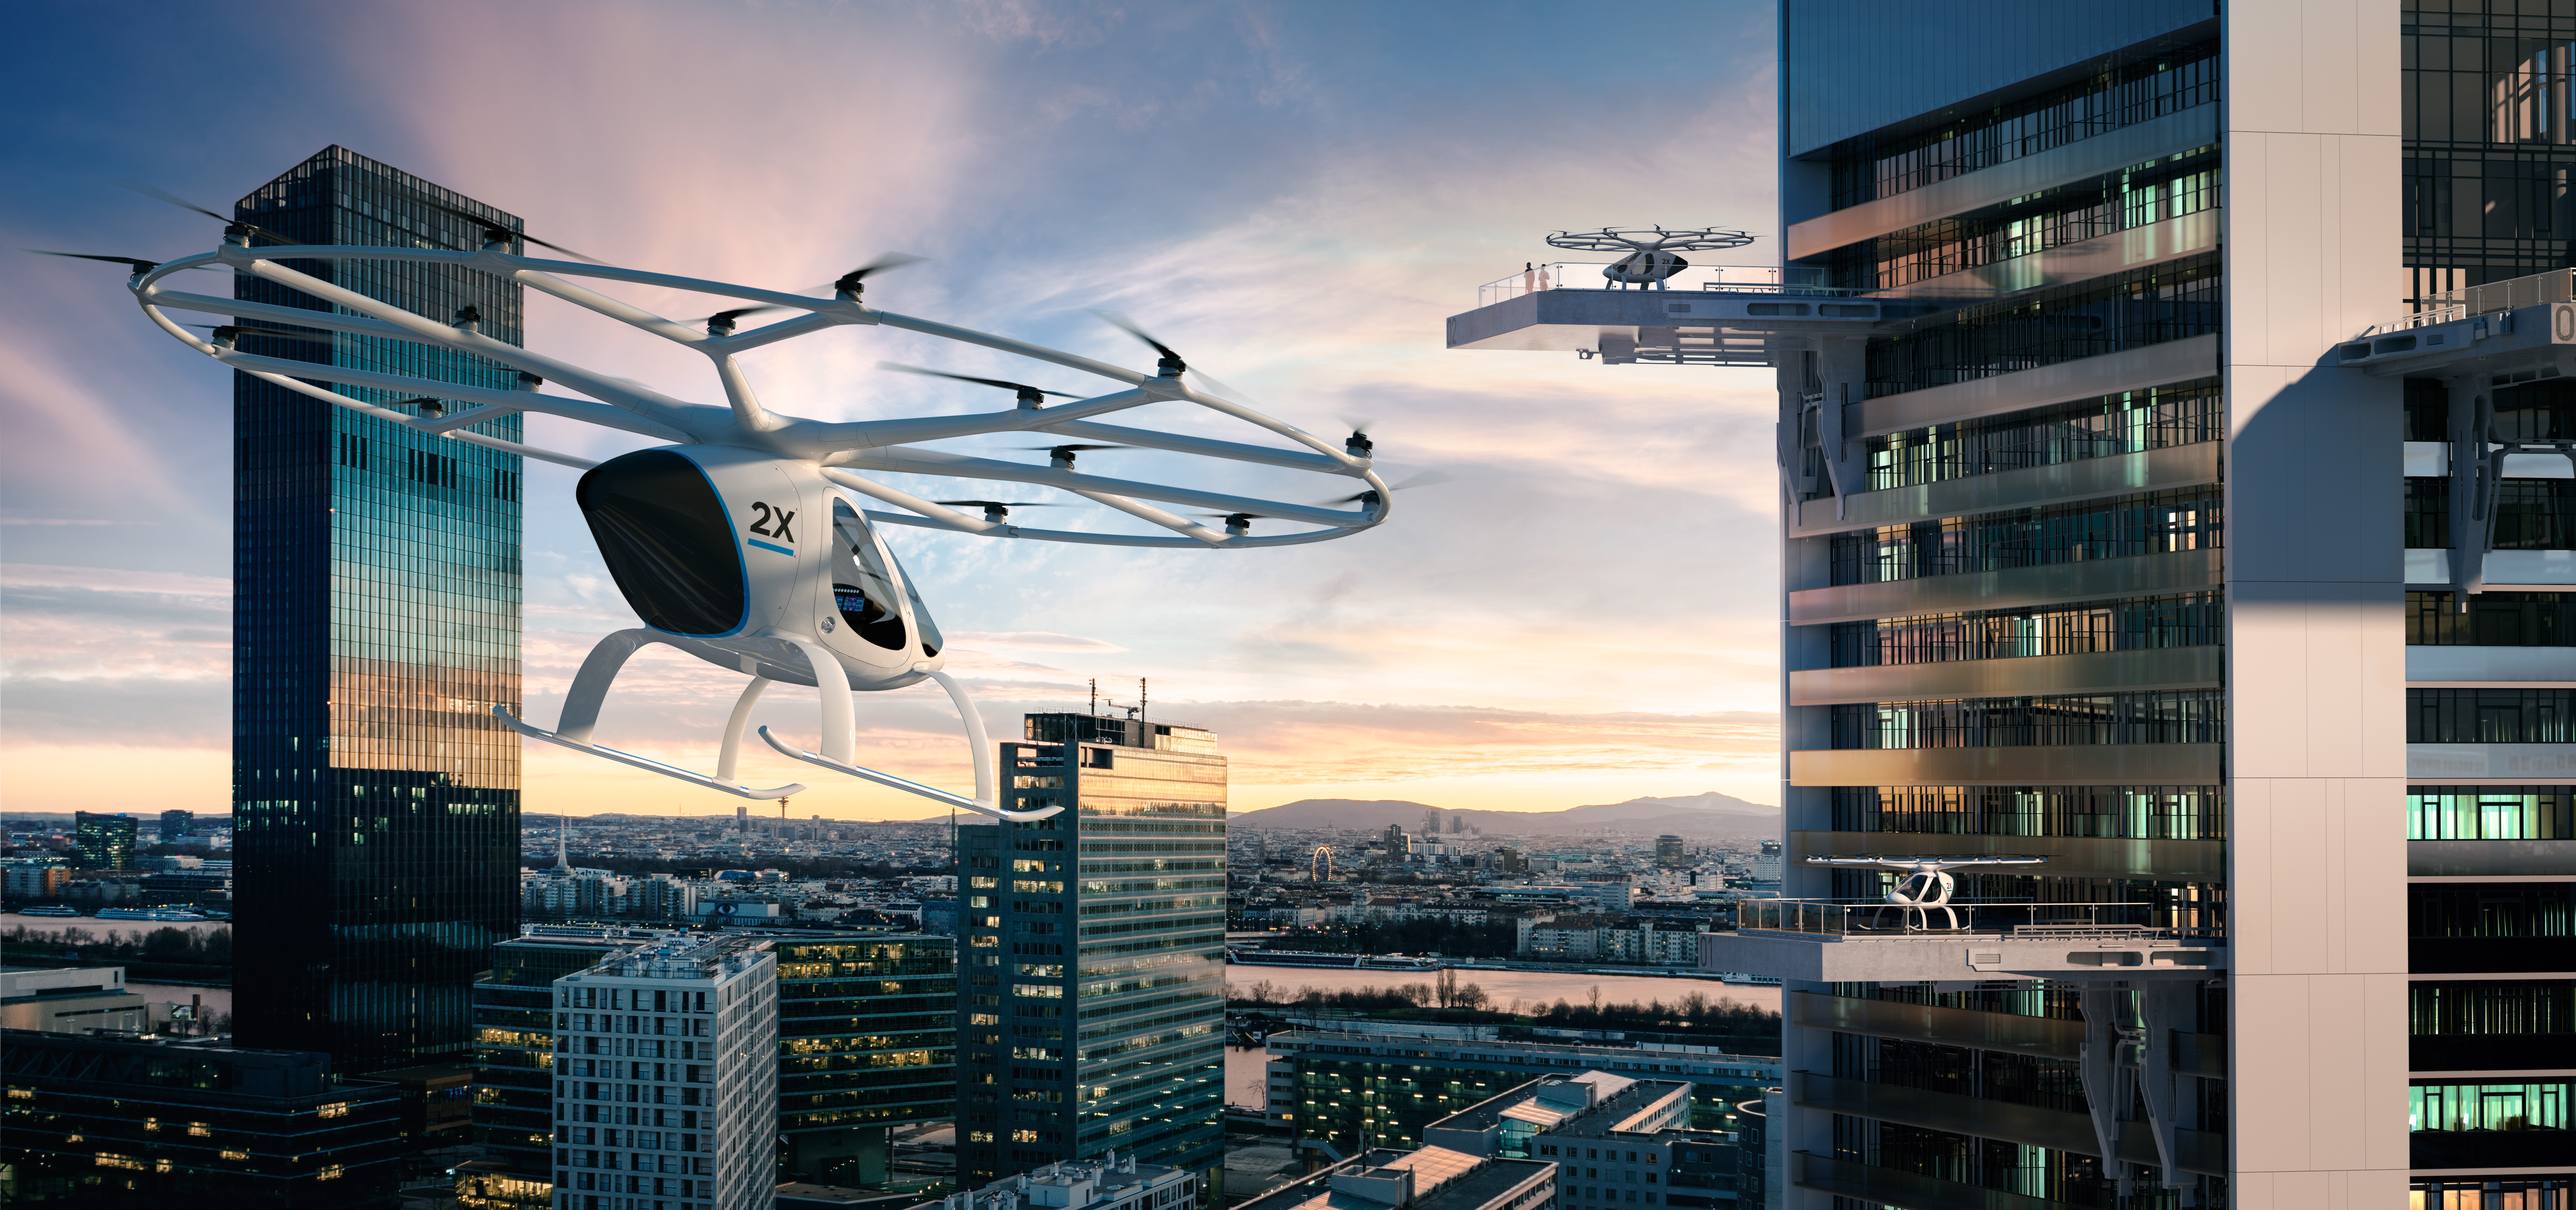 volocopter-2x-innercity.jpg